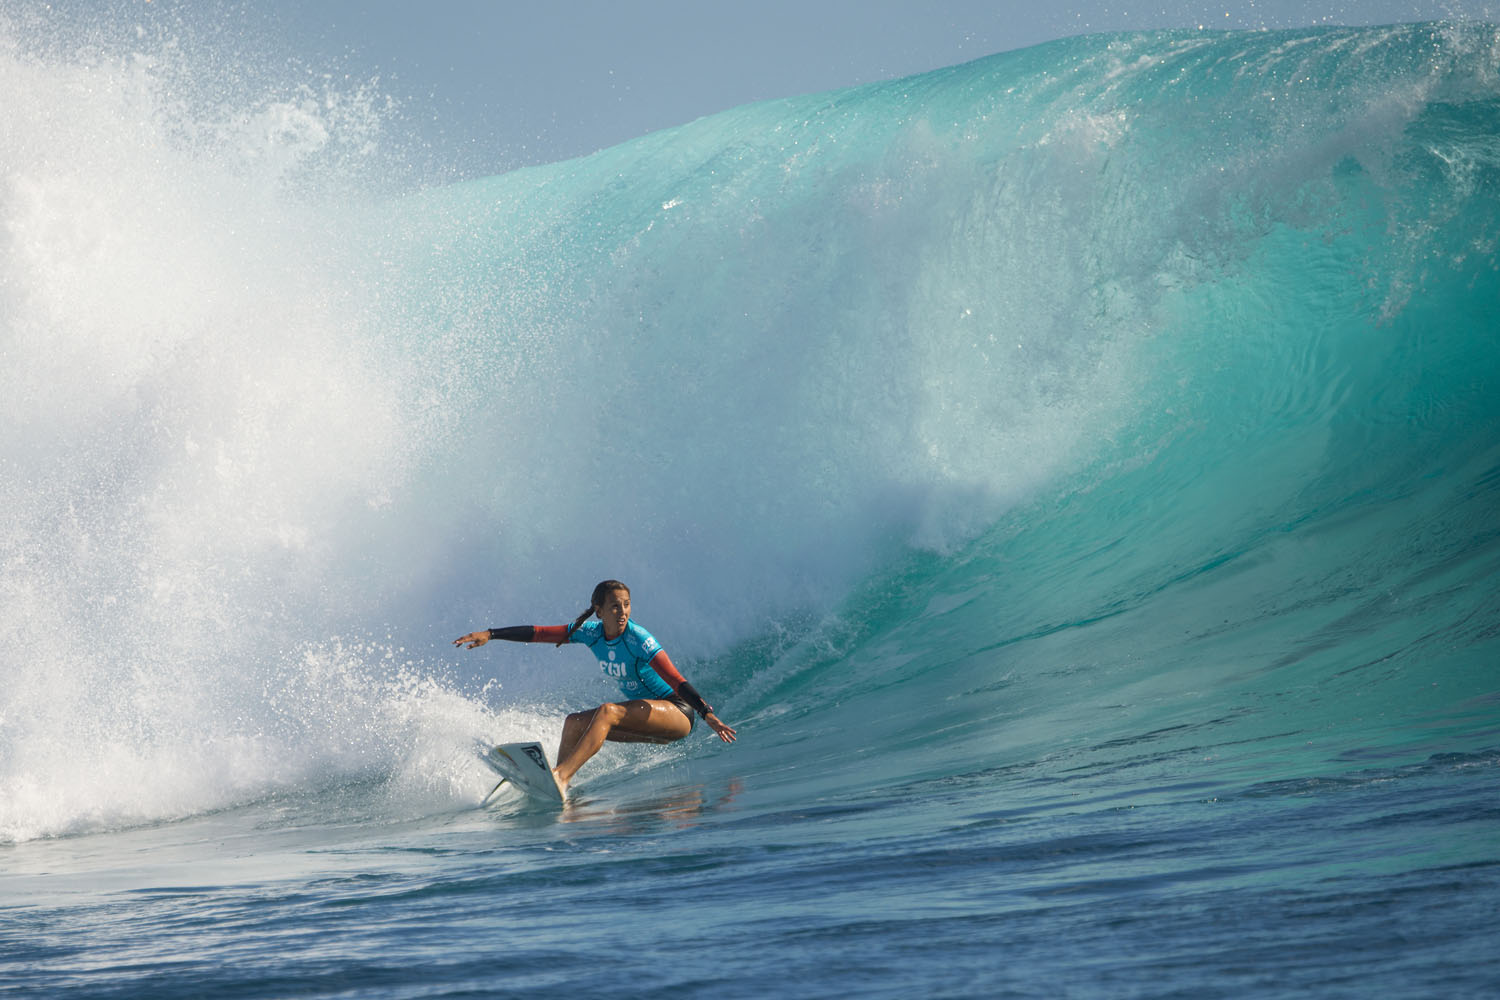 Sally Fitzgibbons takes on the surf at the Women's Fiji Pro on May 29, 2014 in Tavarua, Fiji.